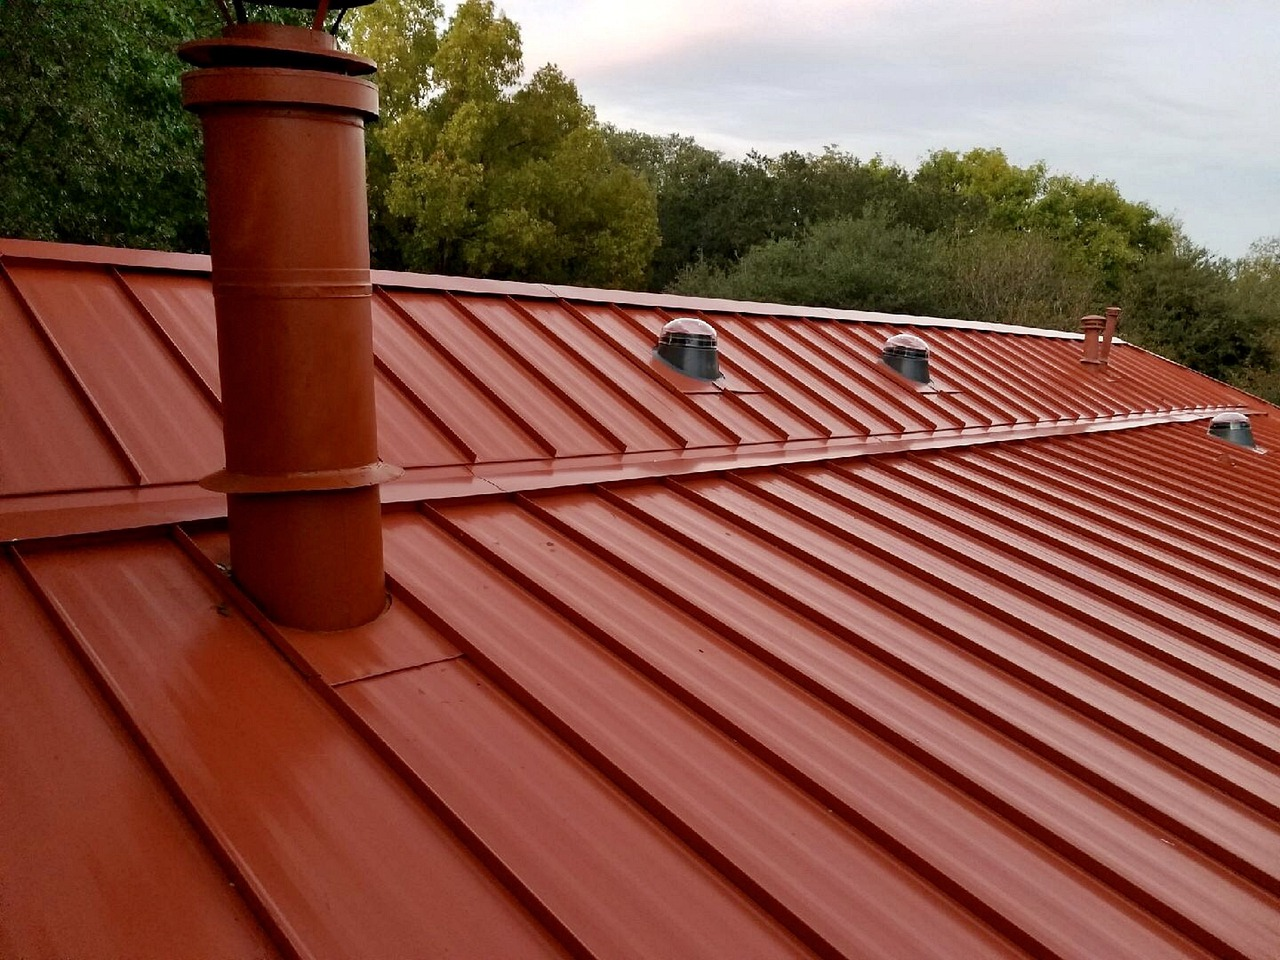 roof-4600216_1280